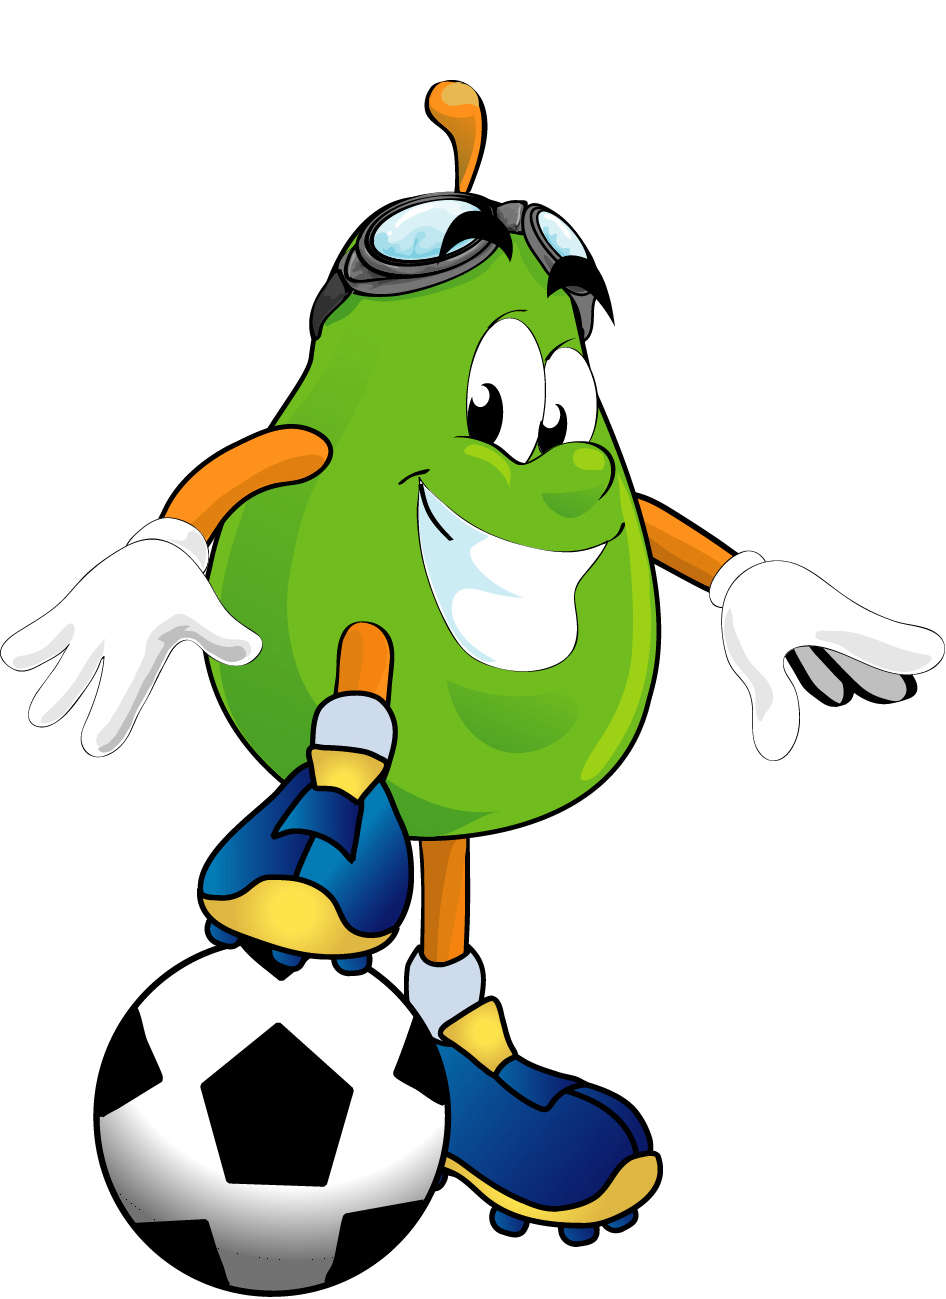 946x1299 Image For Pear Playing Football Health Clip Art Health Clip Art